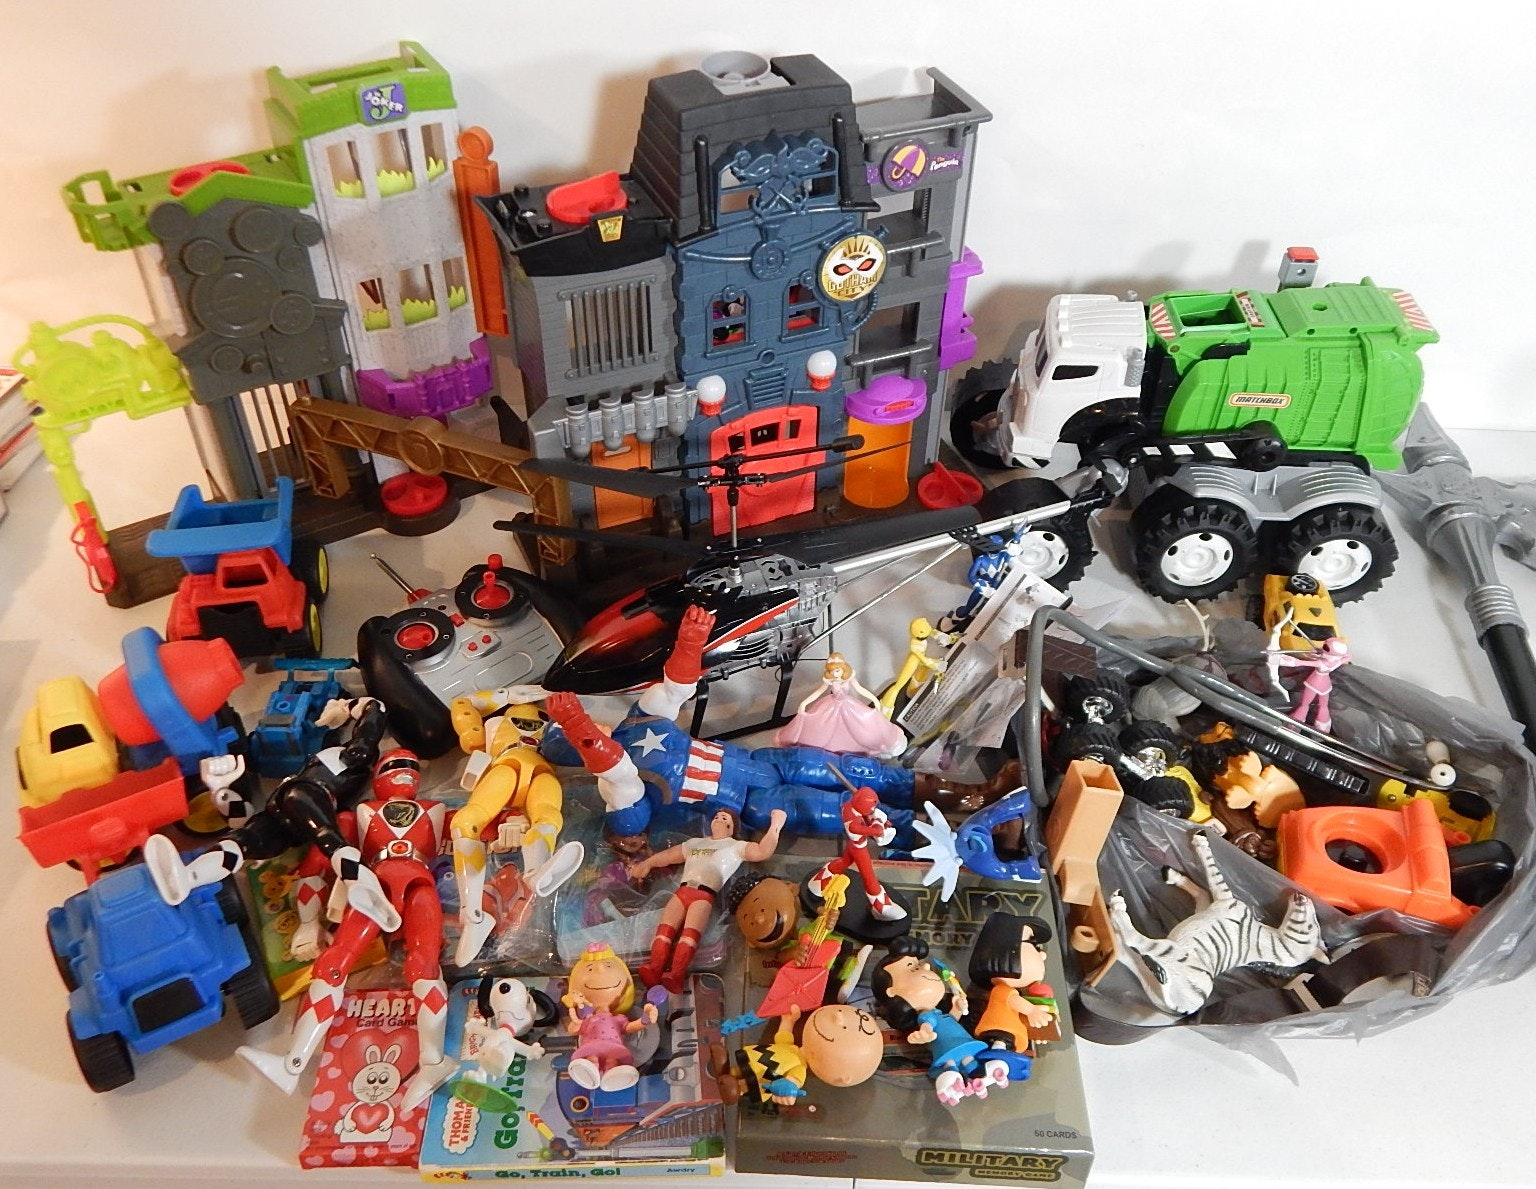 Assorted Toy Lot with Transformers, R/C Helicopter, Power Rangers,Batman Playset